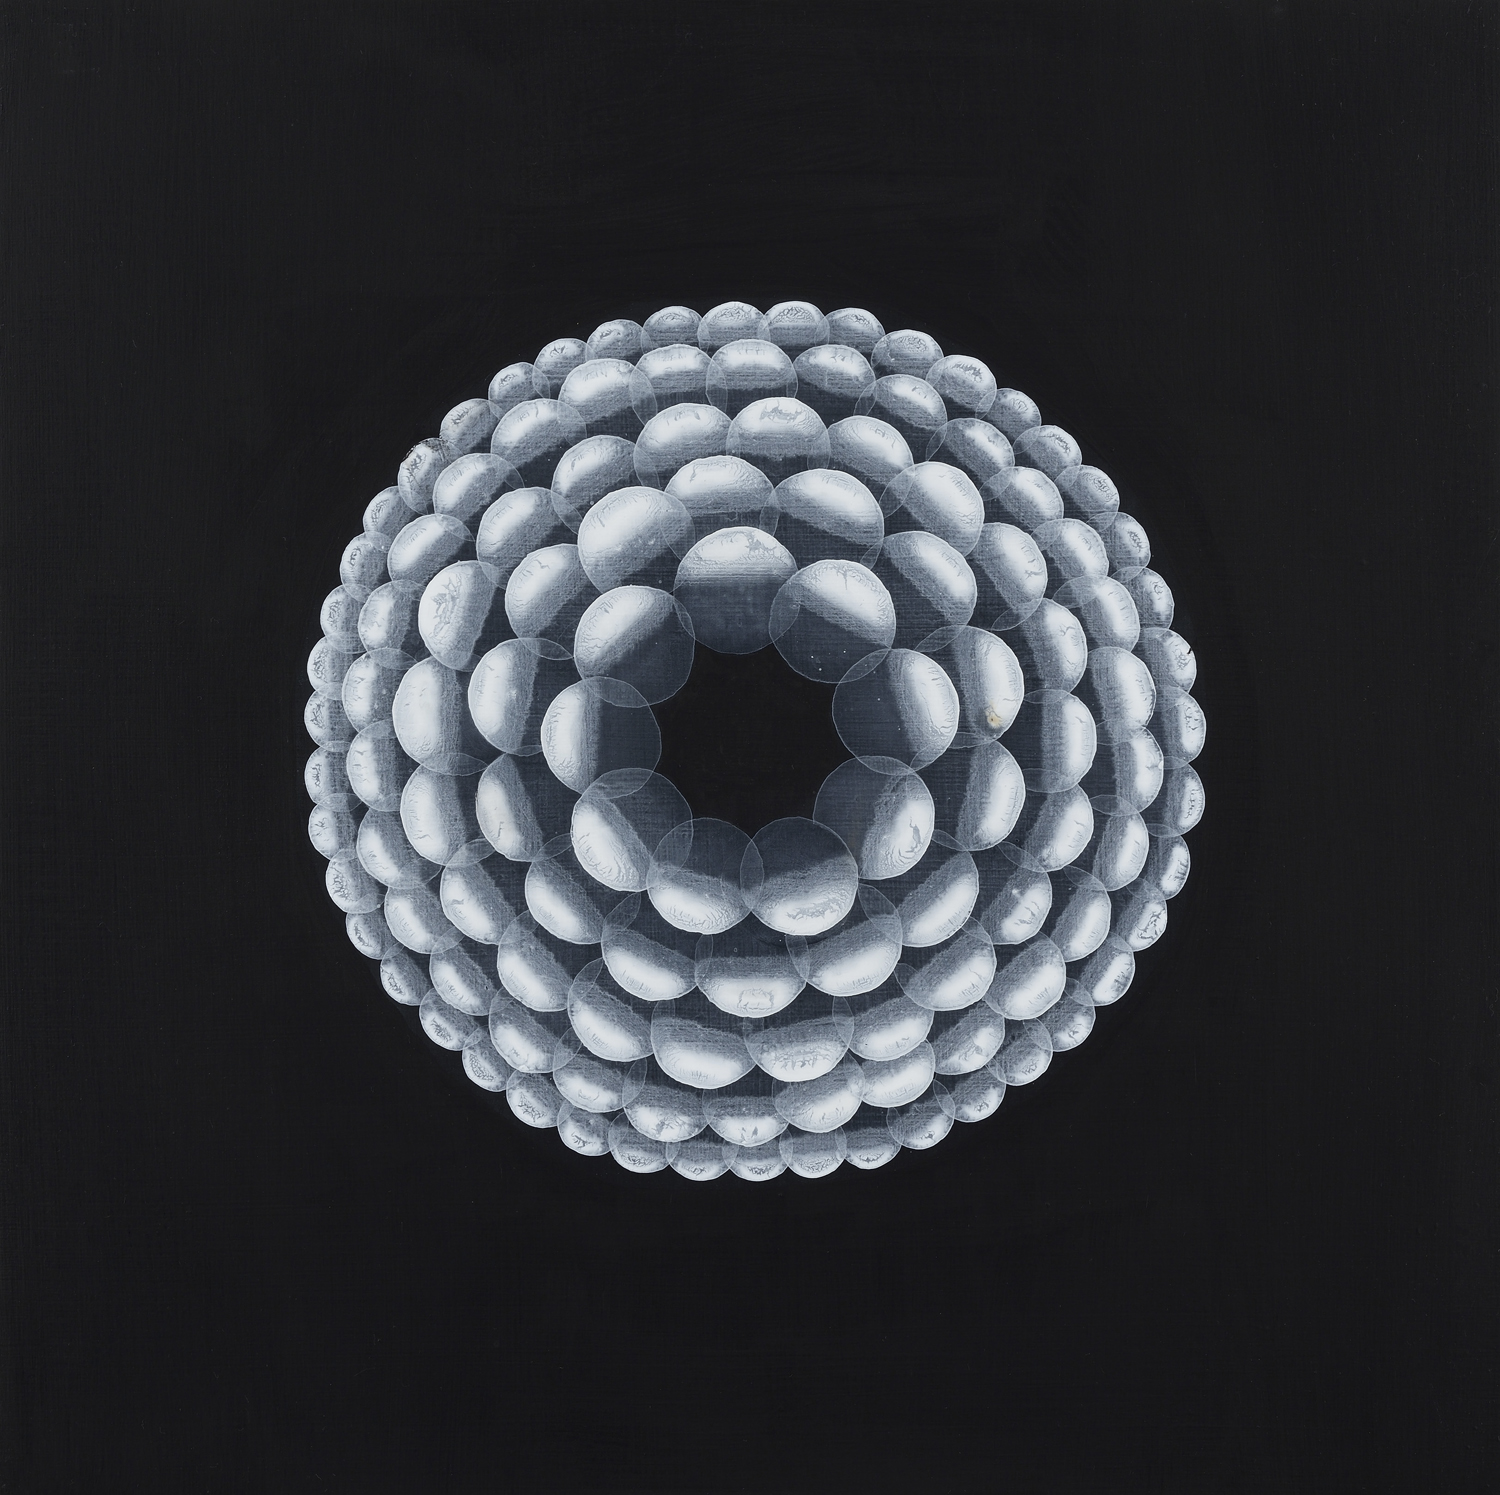 Yvonne Behnke white on black painting cercles form a geometric 3D illusion